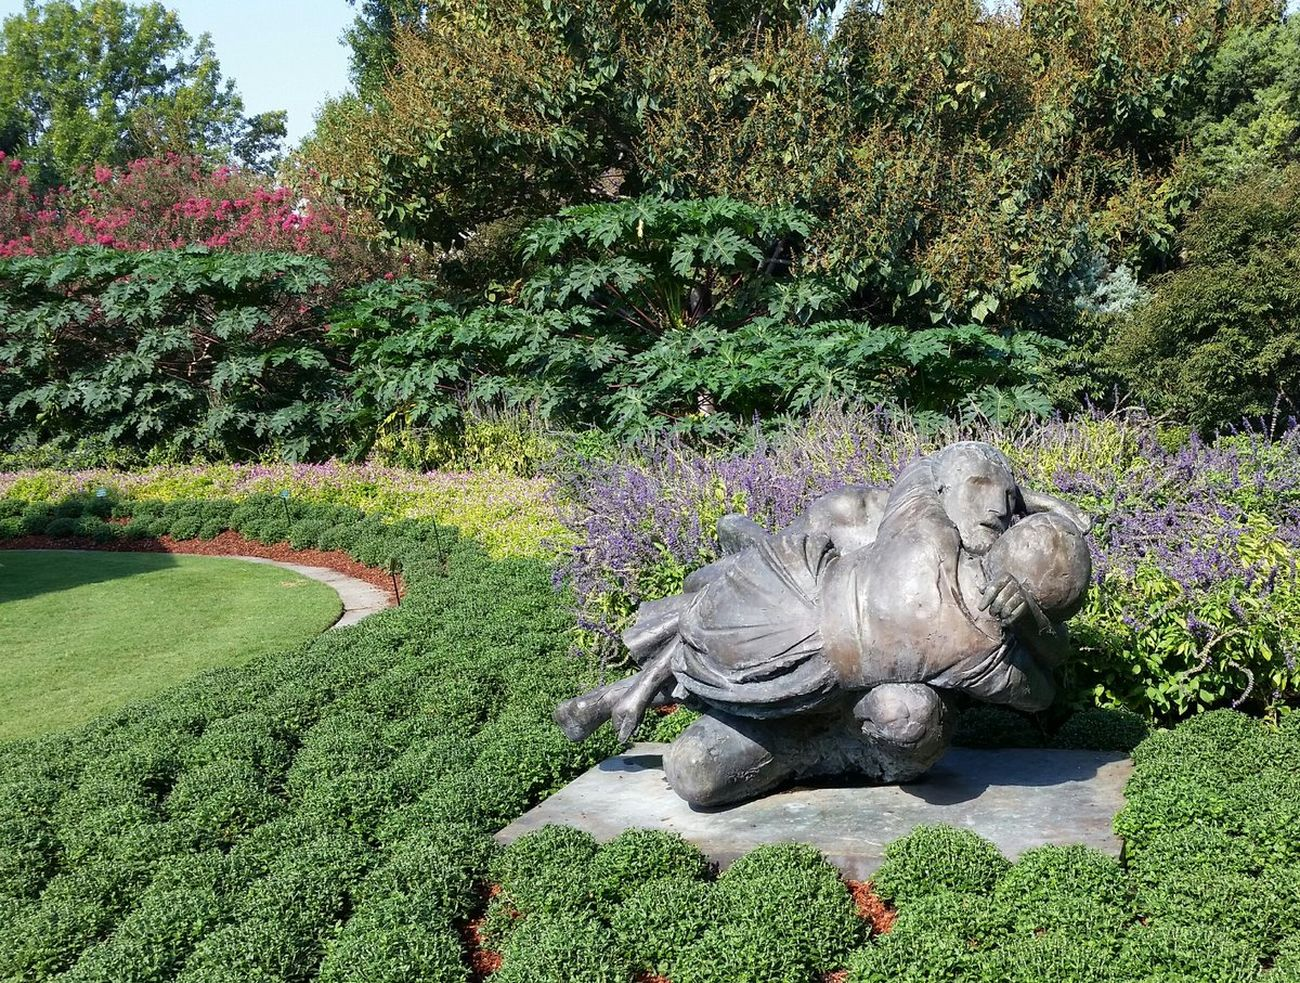 Arboretum Botanical Garden Dallas Arboretum And Botanical Garden 2 Garden Lovers Outdoors Sculpture Shrubs